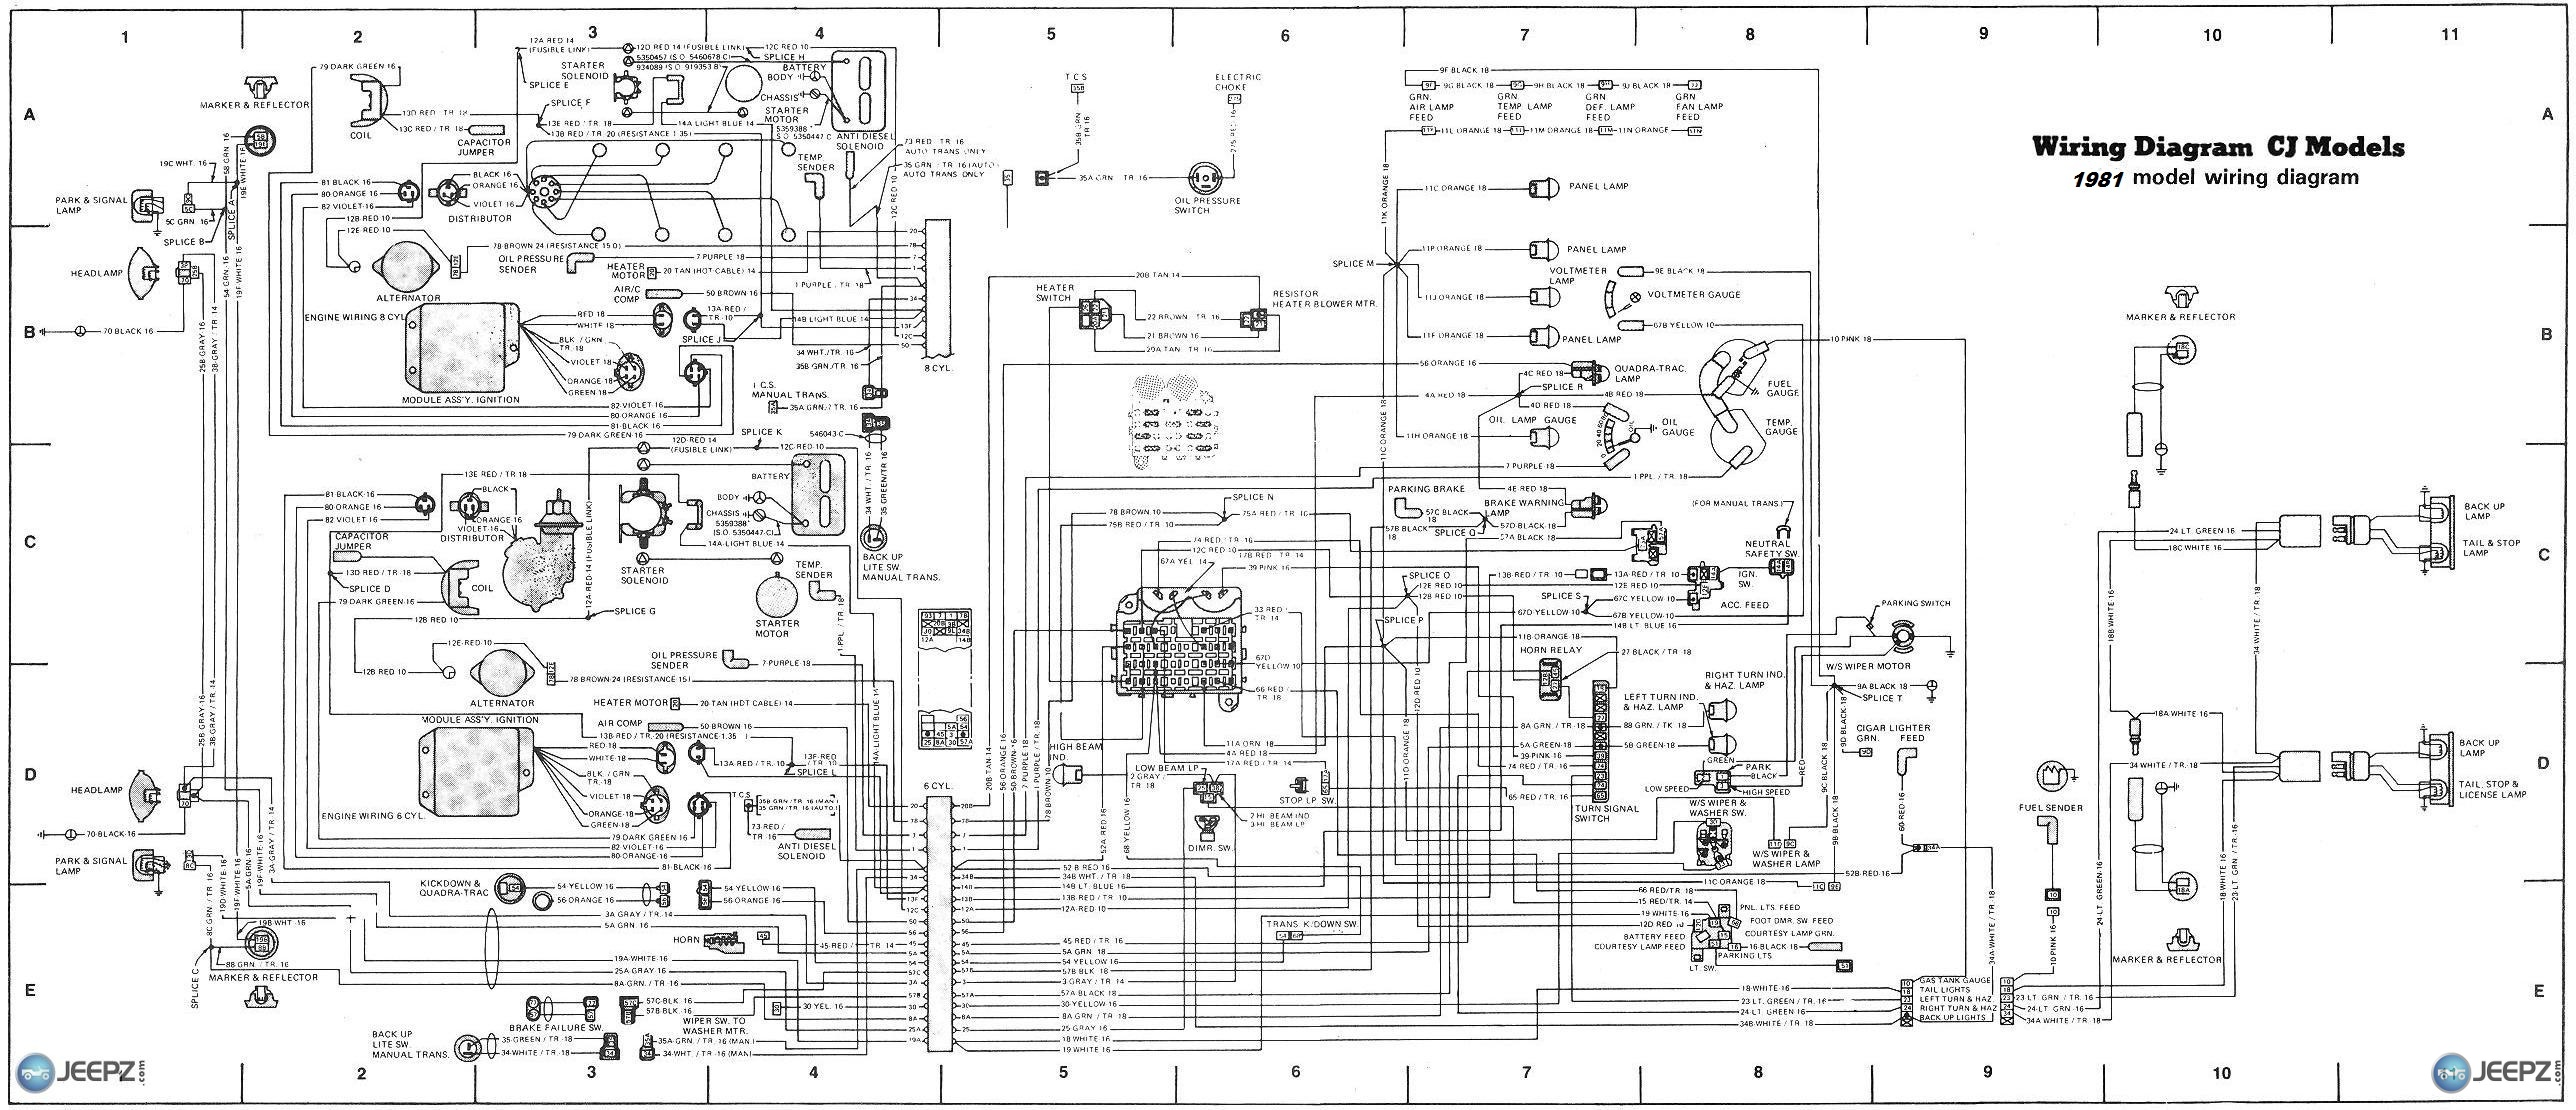 1980 jeep cj7 wiring diagram auto electrical wiring diagram 77 cj7 wiring- diagram 1980 jeep